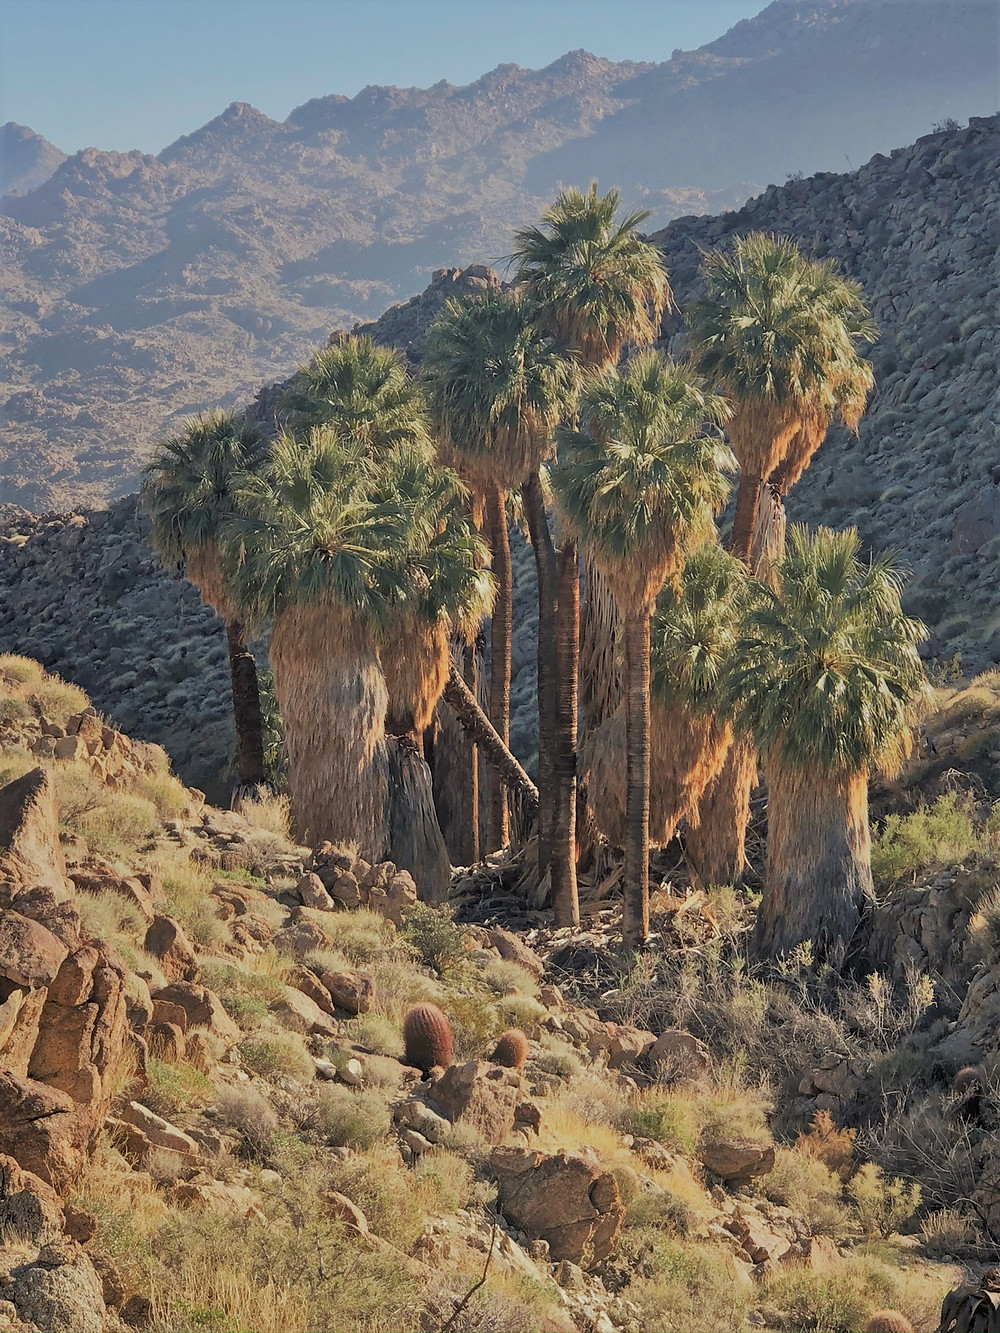 Second palm oasis along the Art Smith Trail in the Santa Rosa Mountains